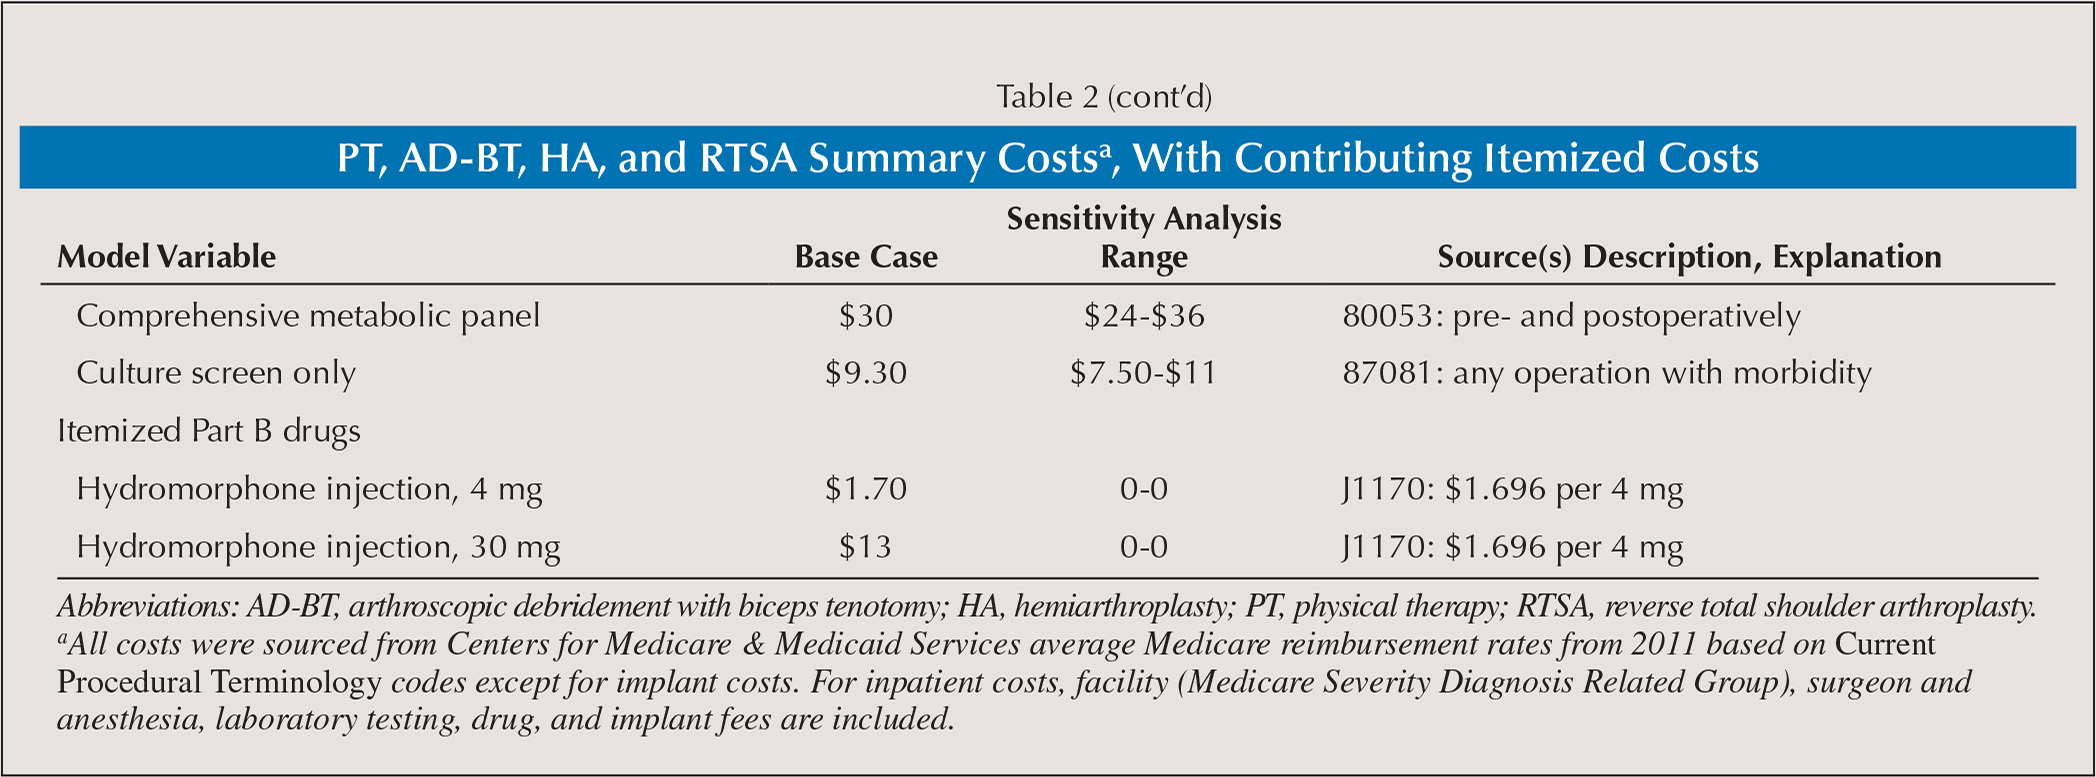 PT, AD-BT, HA, and RTSA Summary Costsa, With Contributing Itemized Costs